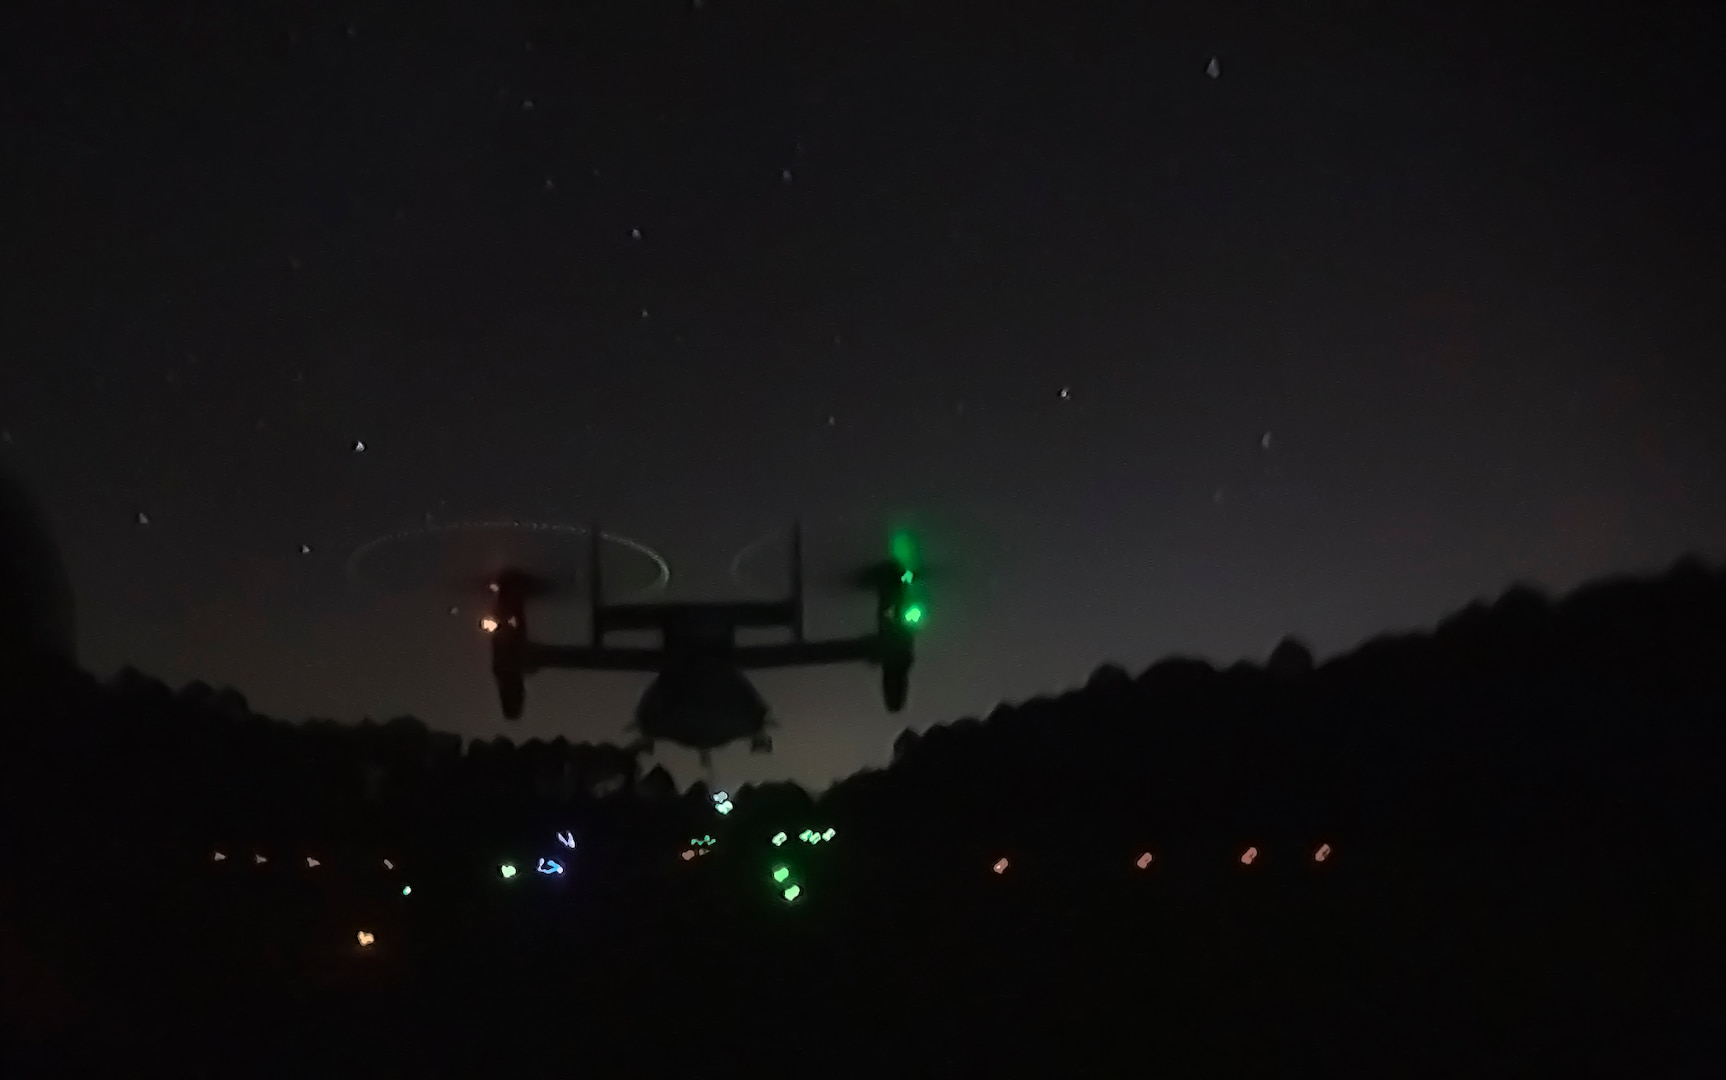 A MV-22B Osprey hovers over a landing zone while a helicopter support team attaches a load to the helicopter during an external lift exercise at Camp Lejeune, N.C., Jan. 24, 2017. External lifts provide a fast, effective way to move cargo and other heavy equipment, increasing the logistic capabilities of ground elements. The helicopter support team Marines are with Combat Logistics Battalion 26. (U.S. Marine Corps photo by Lance Cpl. Damarko Bones)